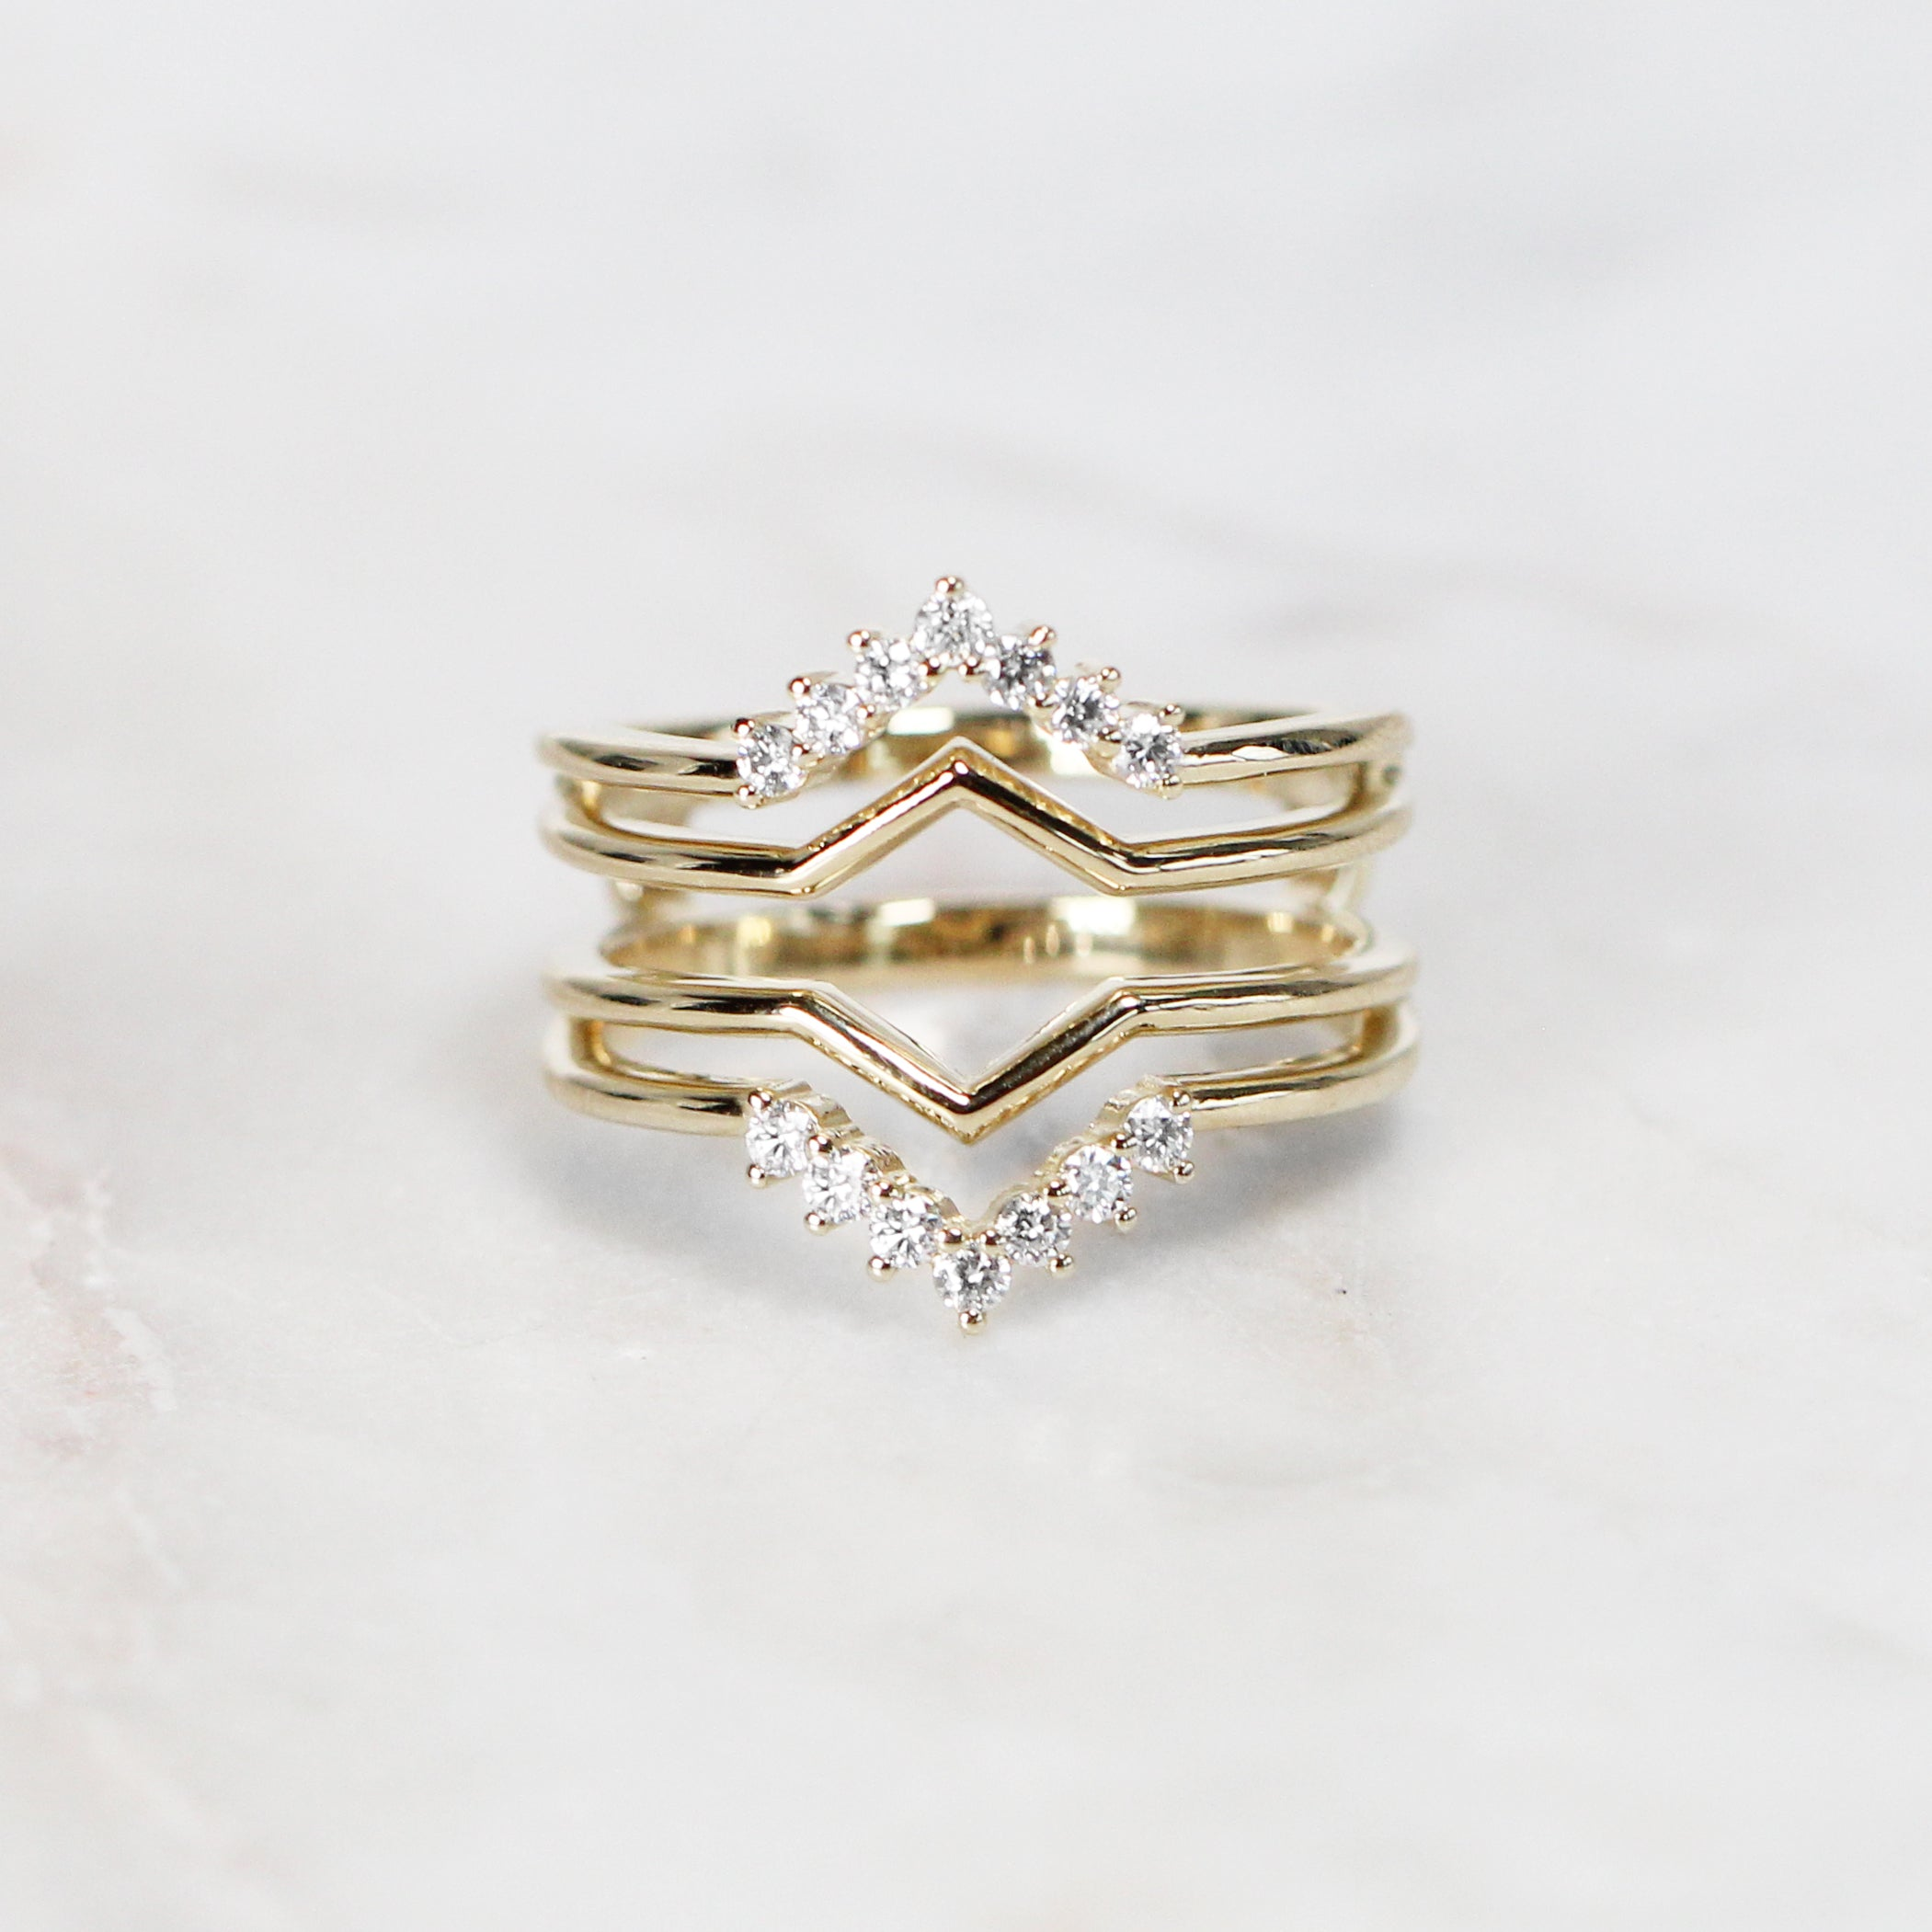 Savannah Diamond Ring Guard - Salt & Pepper Celestial Diamond Engagement Rings and Wedding Bands  by Midwinter Co.